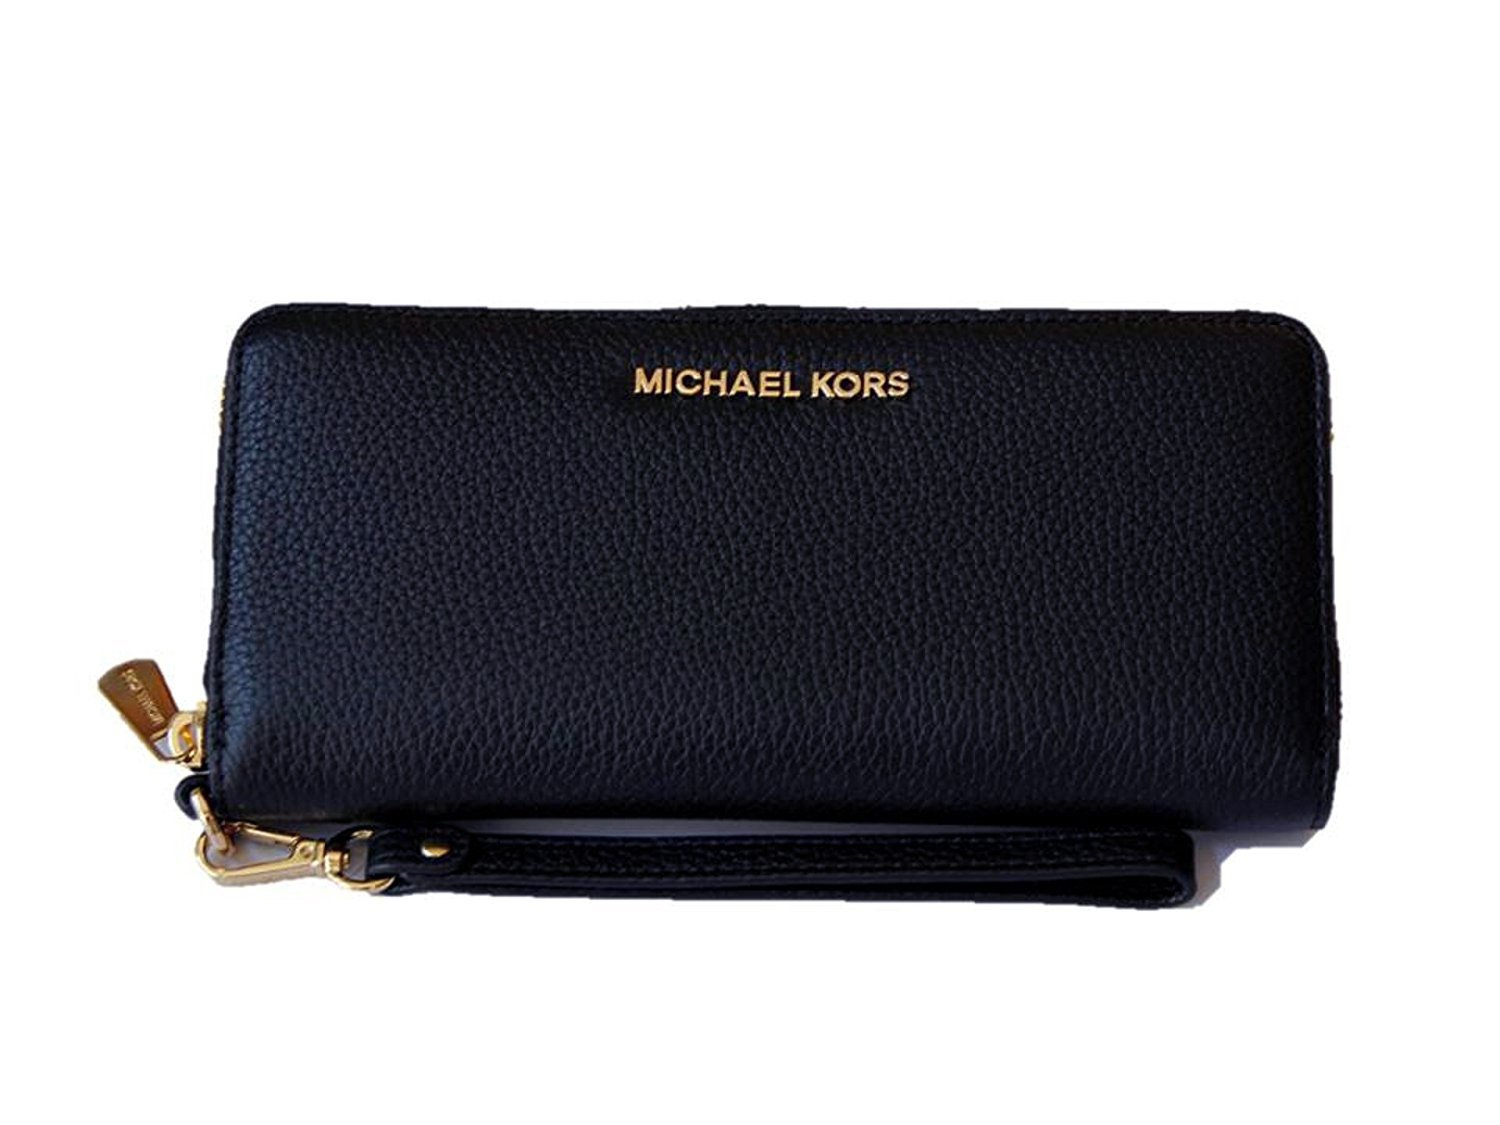 Michael Kors Jet Set Travel Continental Leather Wallet/Wristlet Navy Gold by Michael Kors